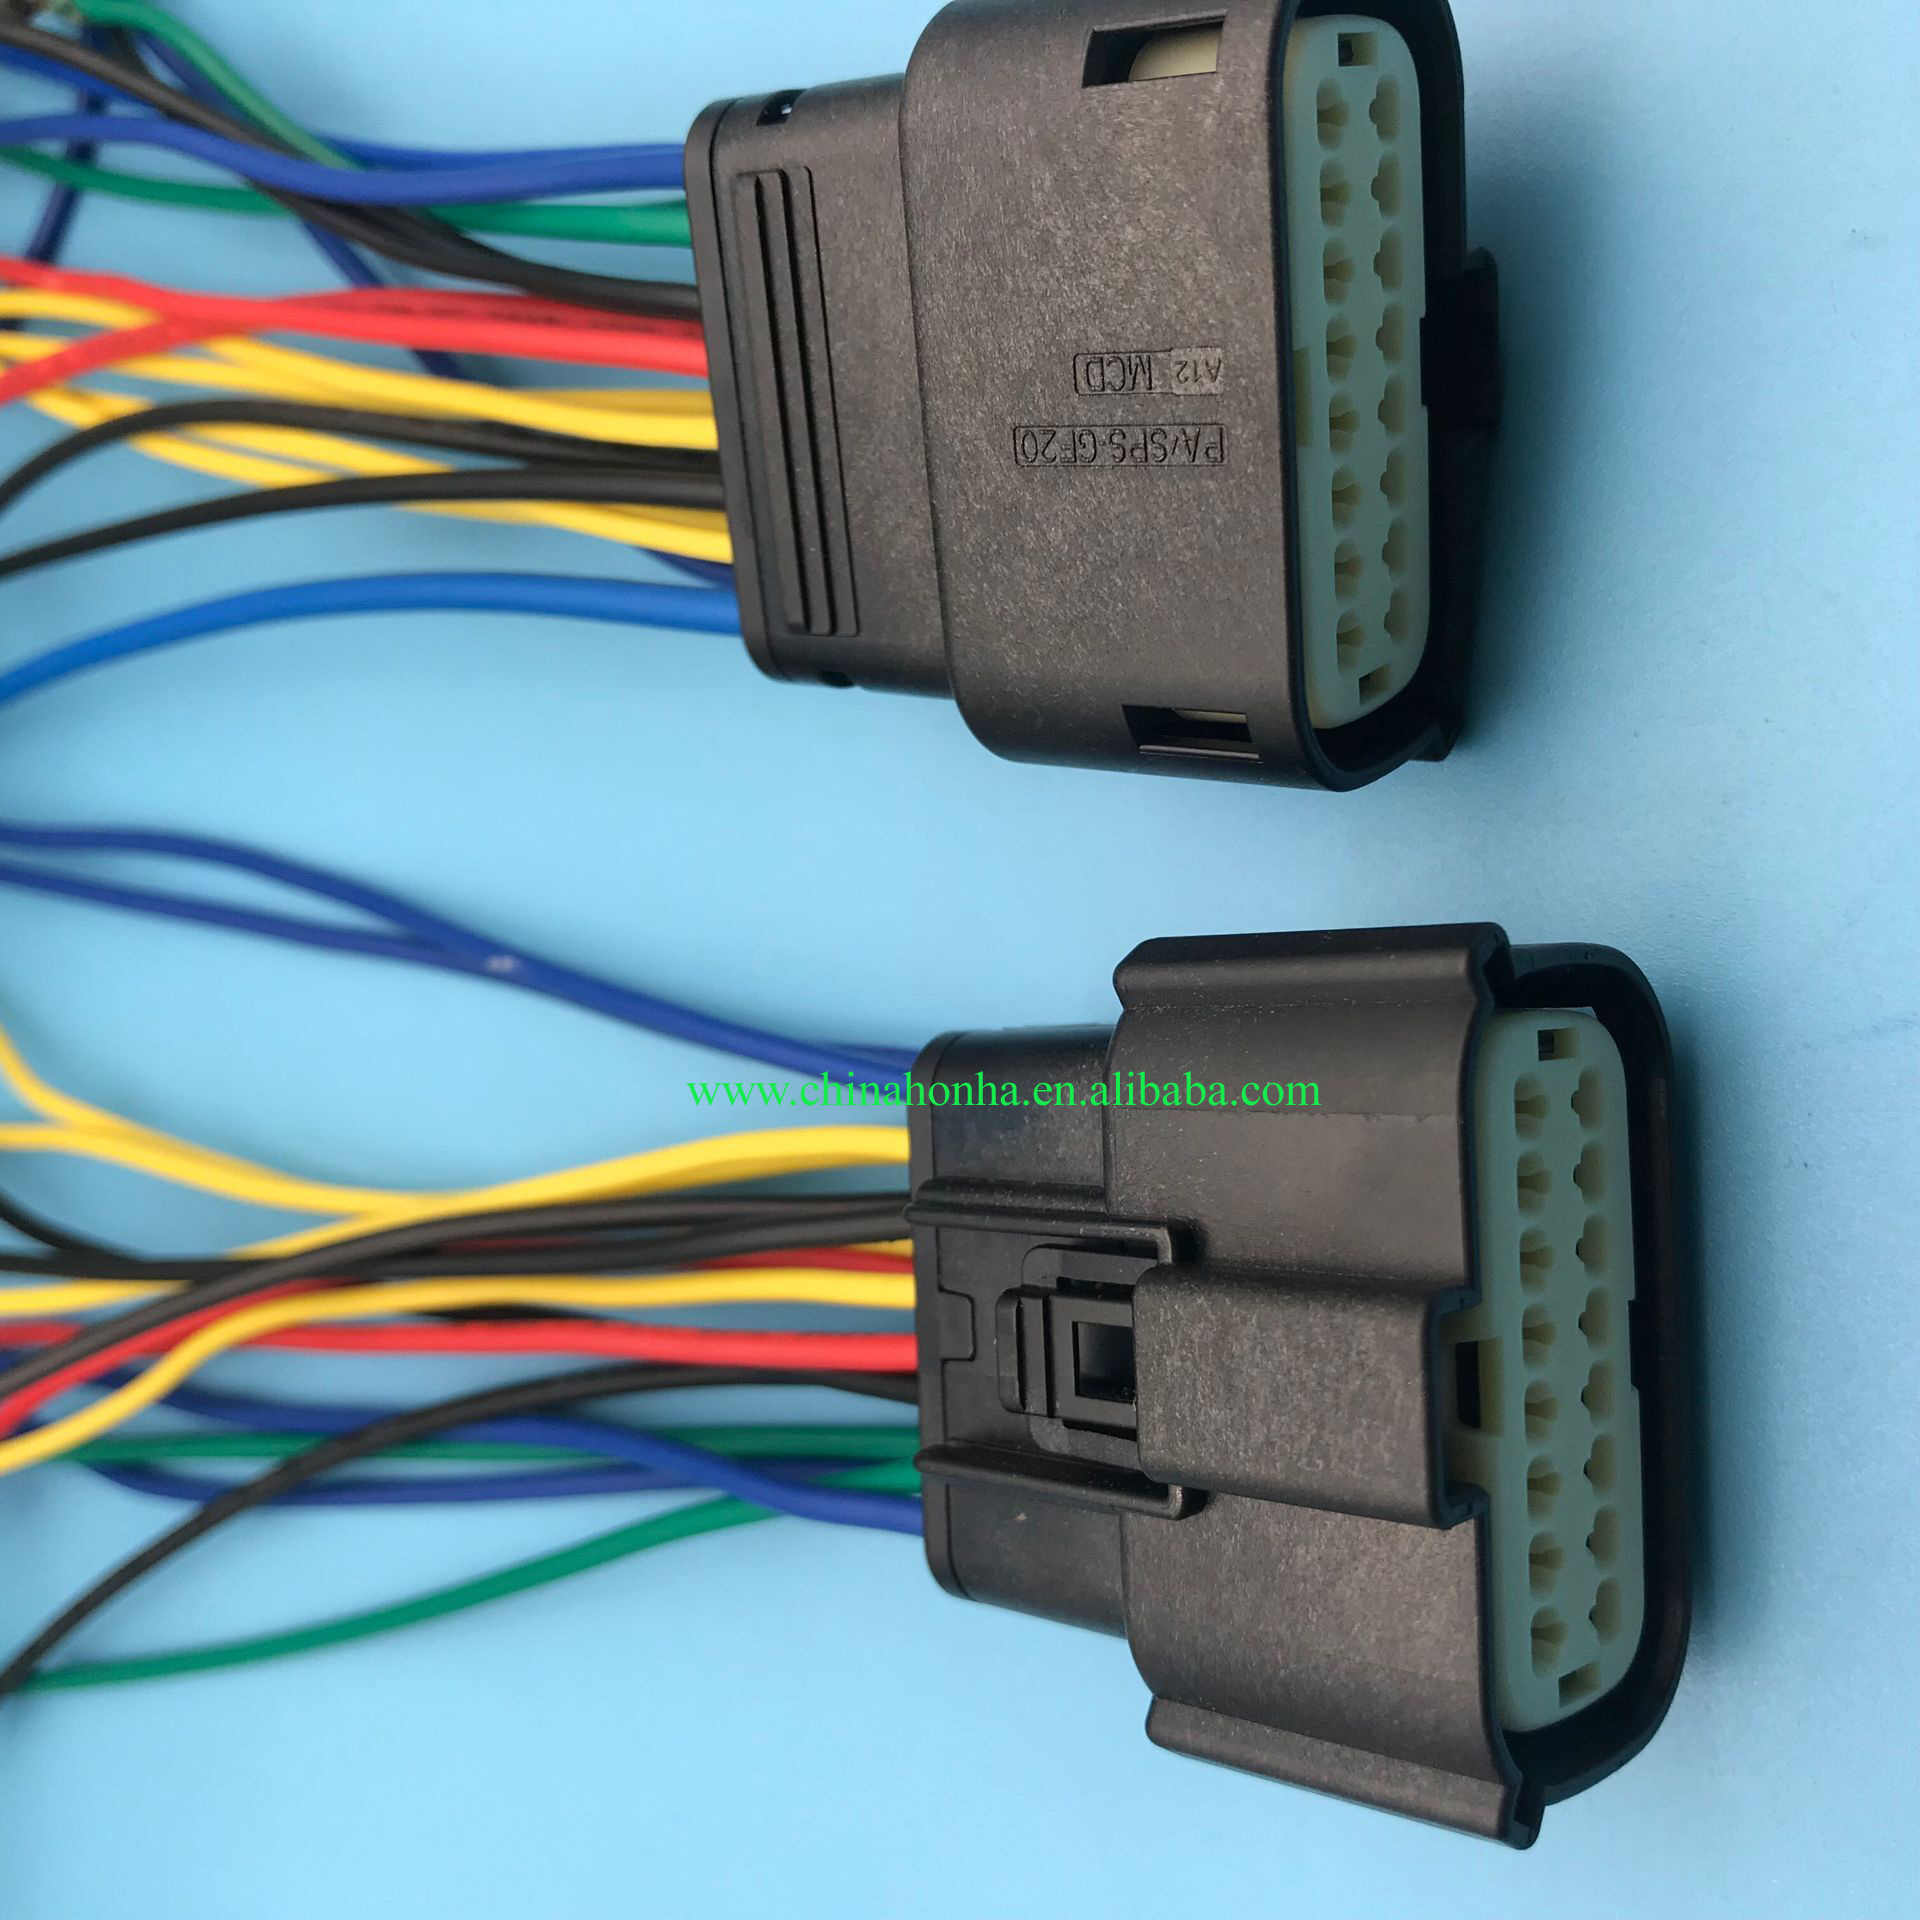 [DIAGRAM_1CA]  Free shipping 1pcs for Molex auto 16pin electric housing plug 33472 1601 wiring  harness cable connector 33472 1740| | - AliExpress | Mcd Wiring Harness |  | www.aliexpress.com